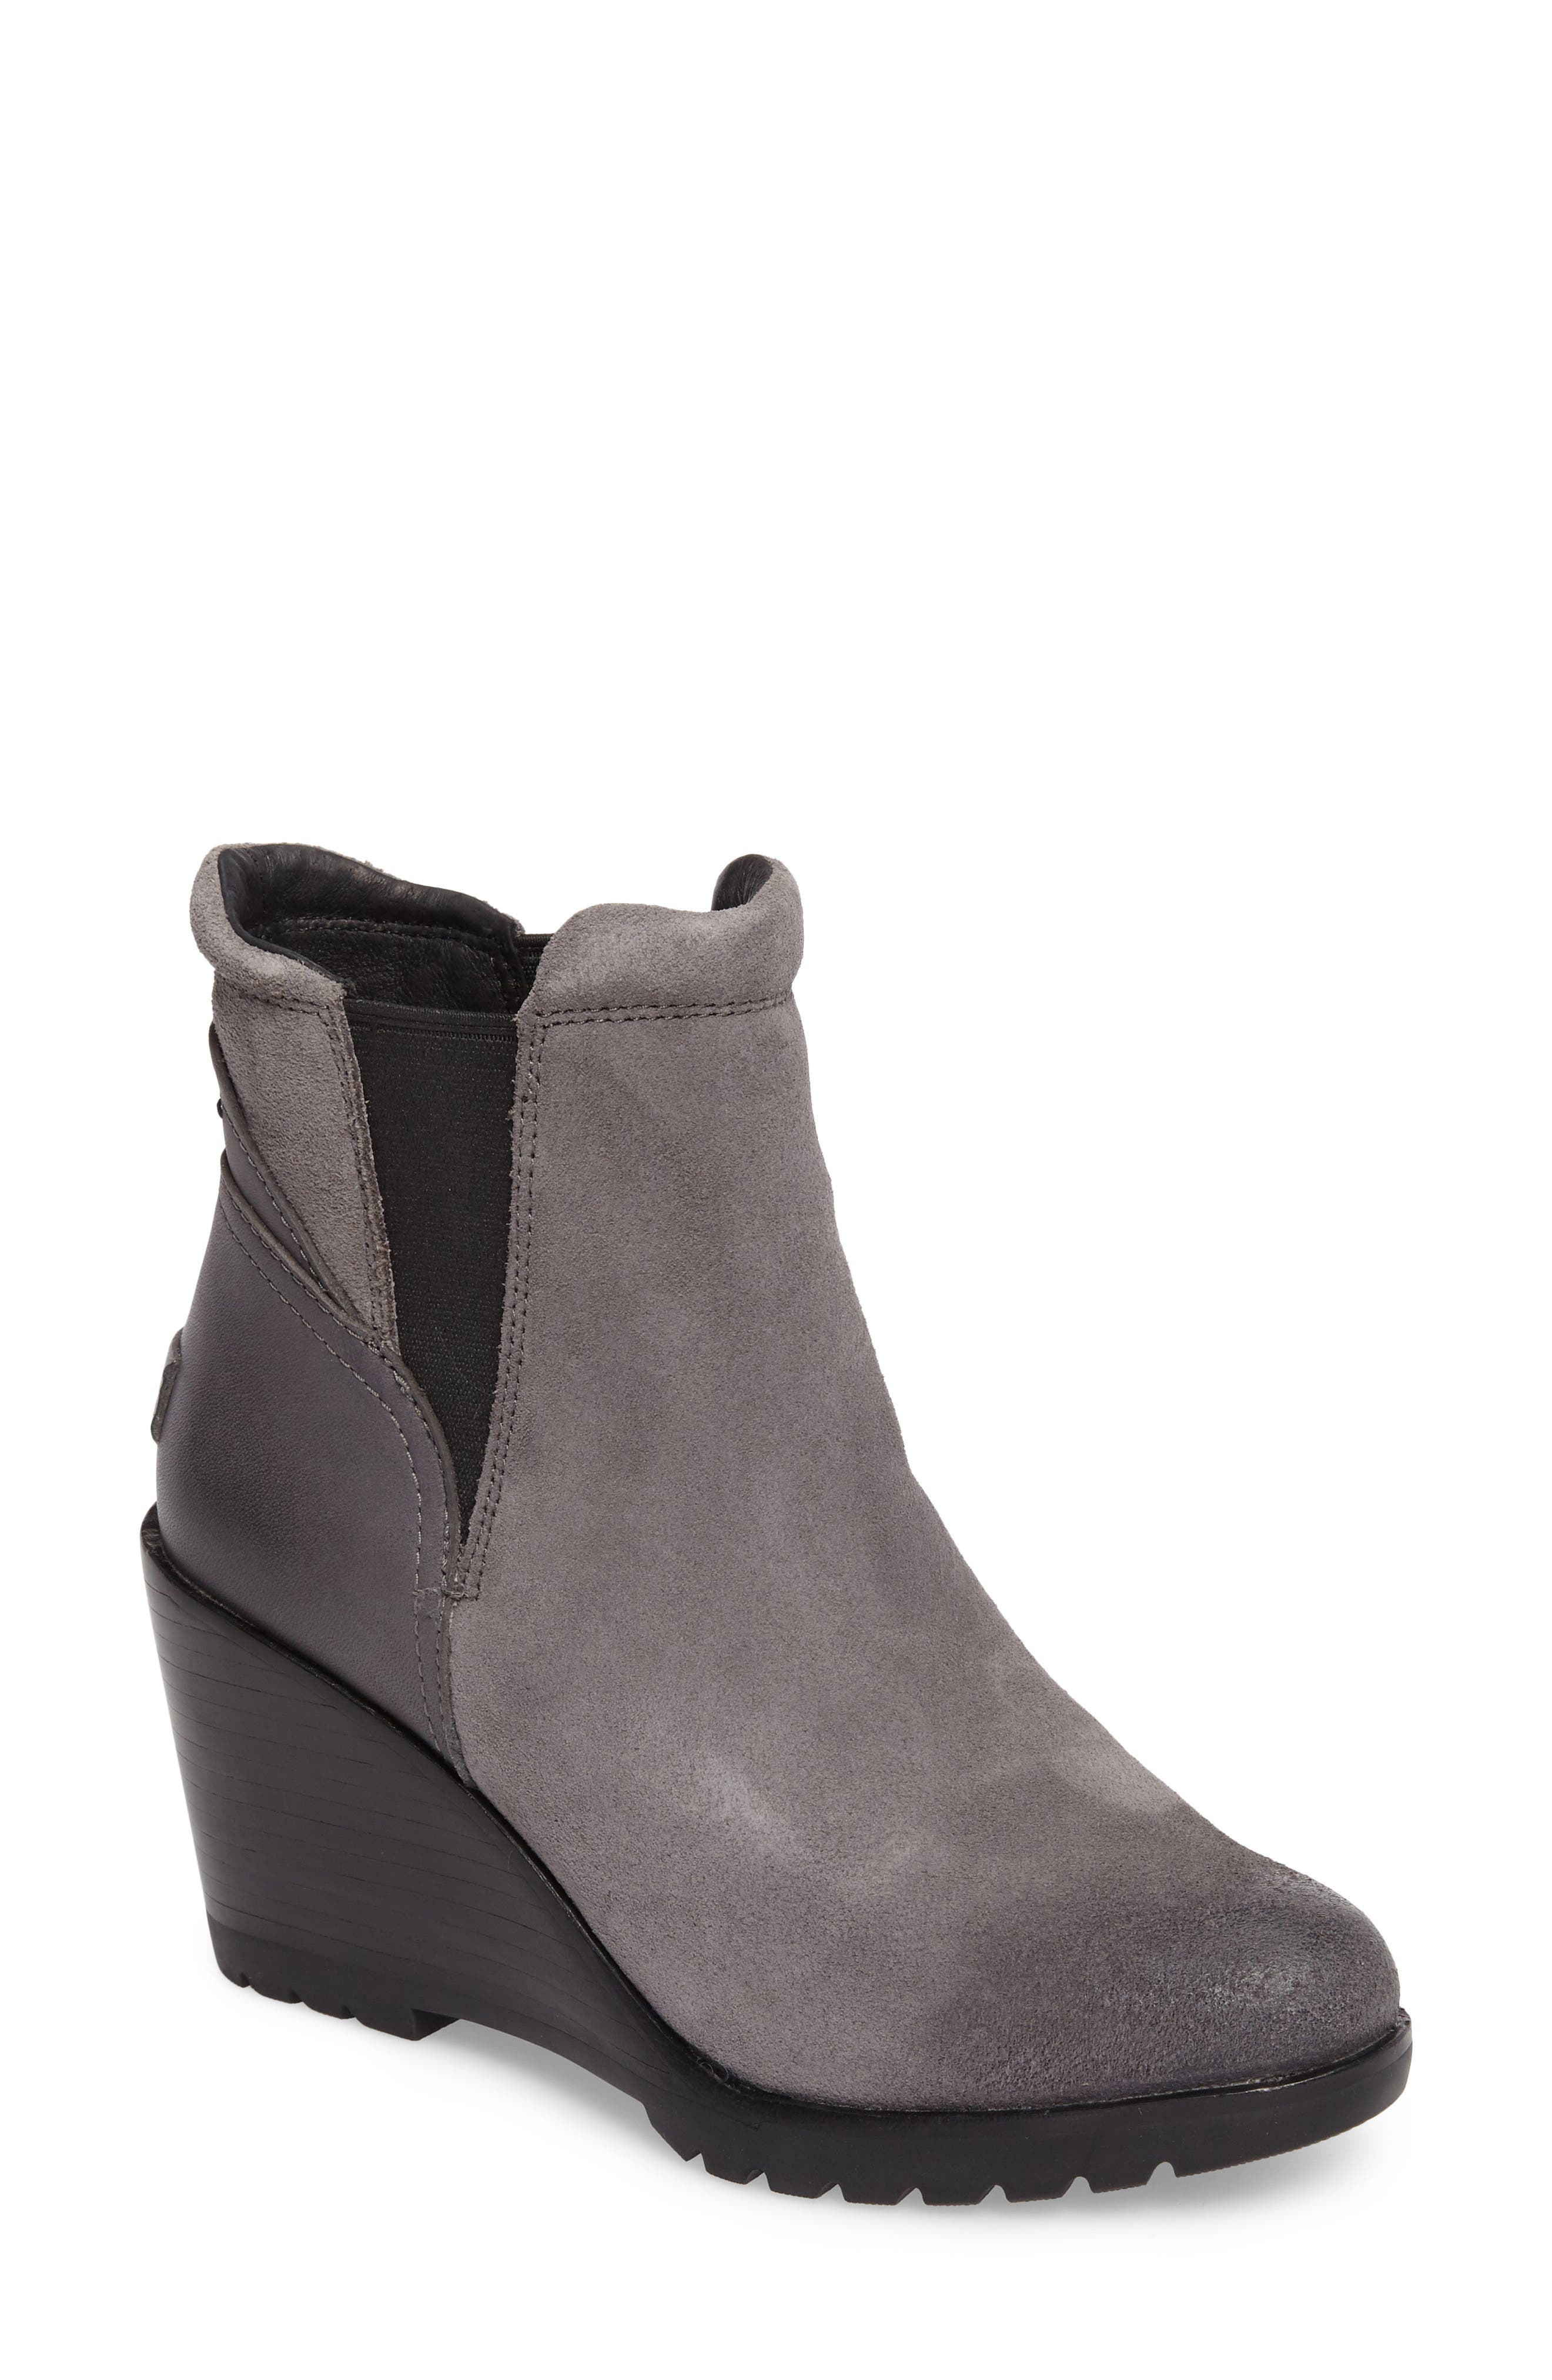 After Hours Chelsea Boot,                             Main thumbnail 3, color,